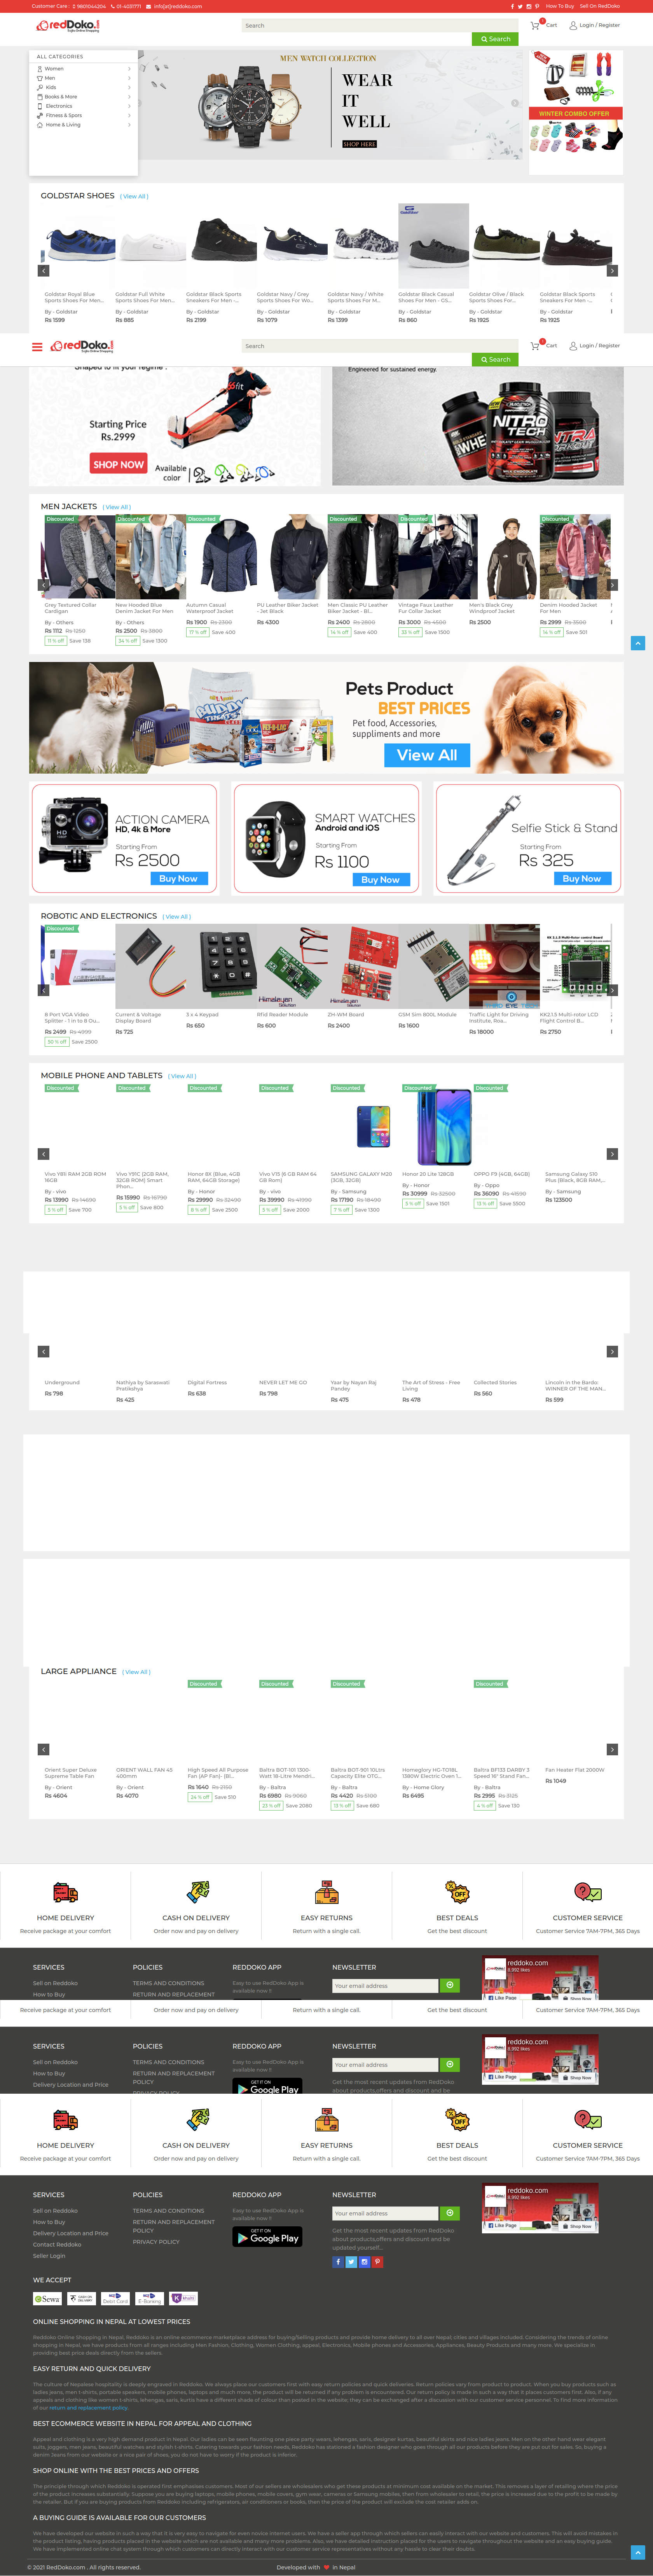 ecommerce-project